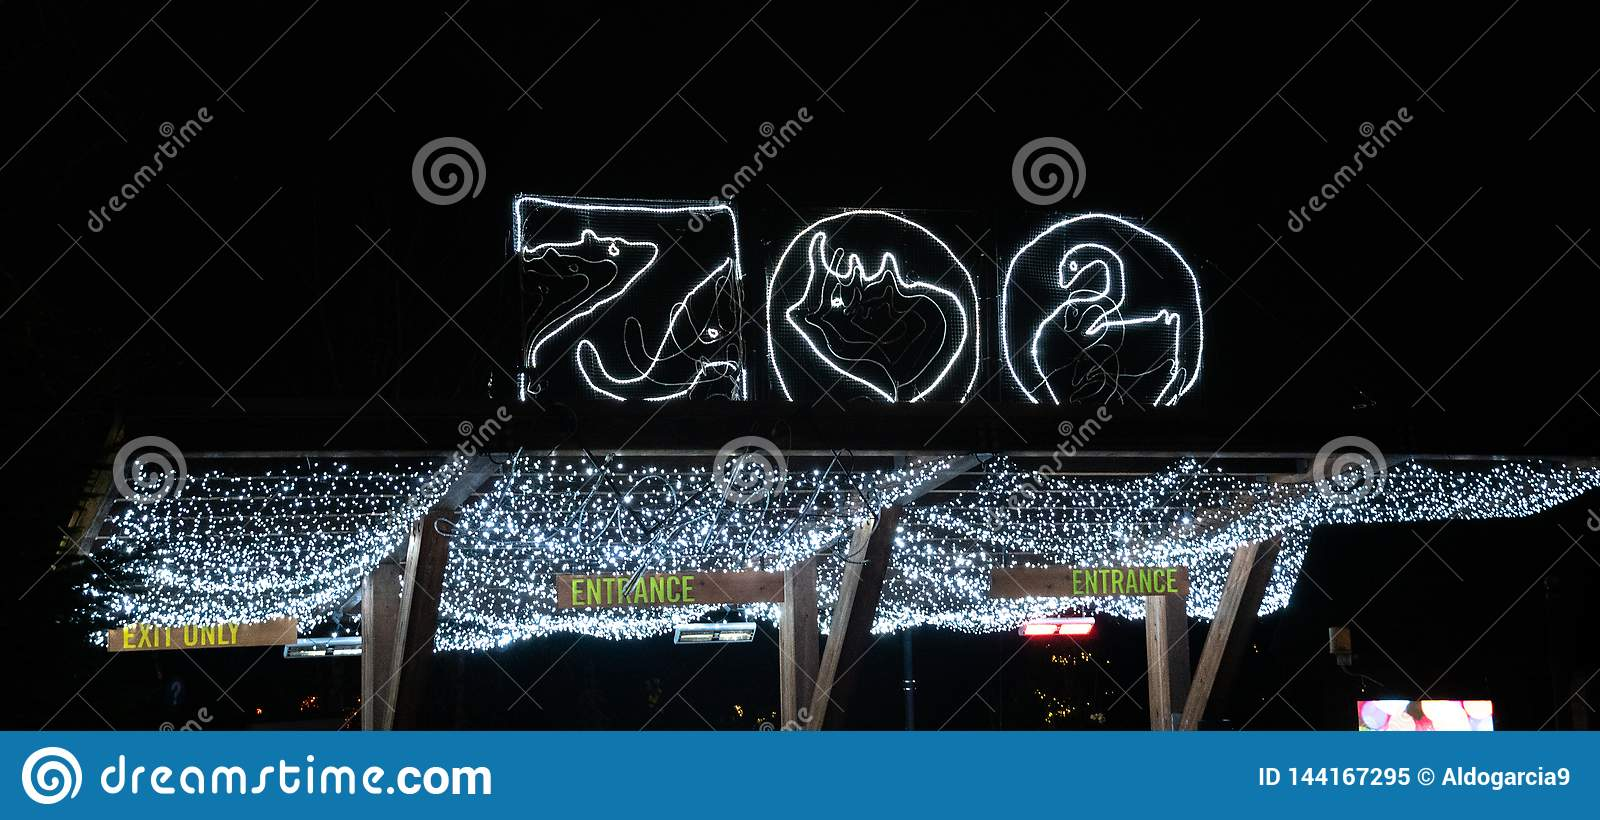 Zoo light based entrance sign